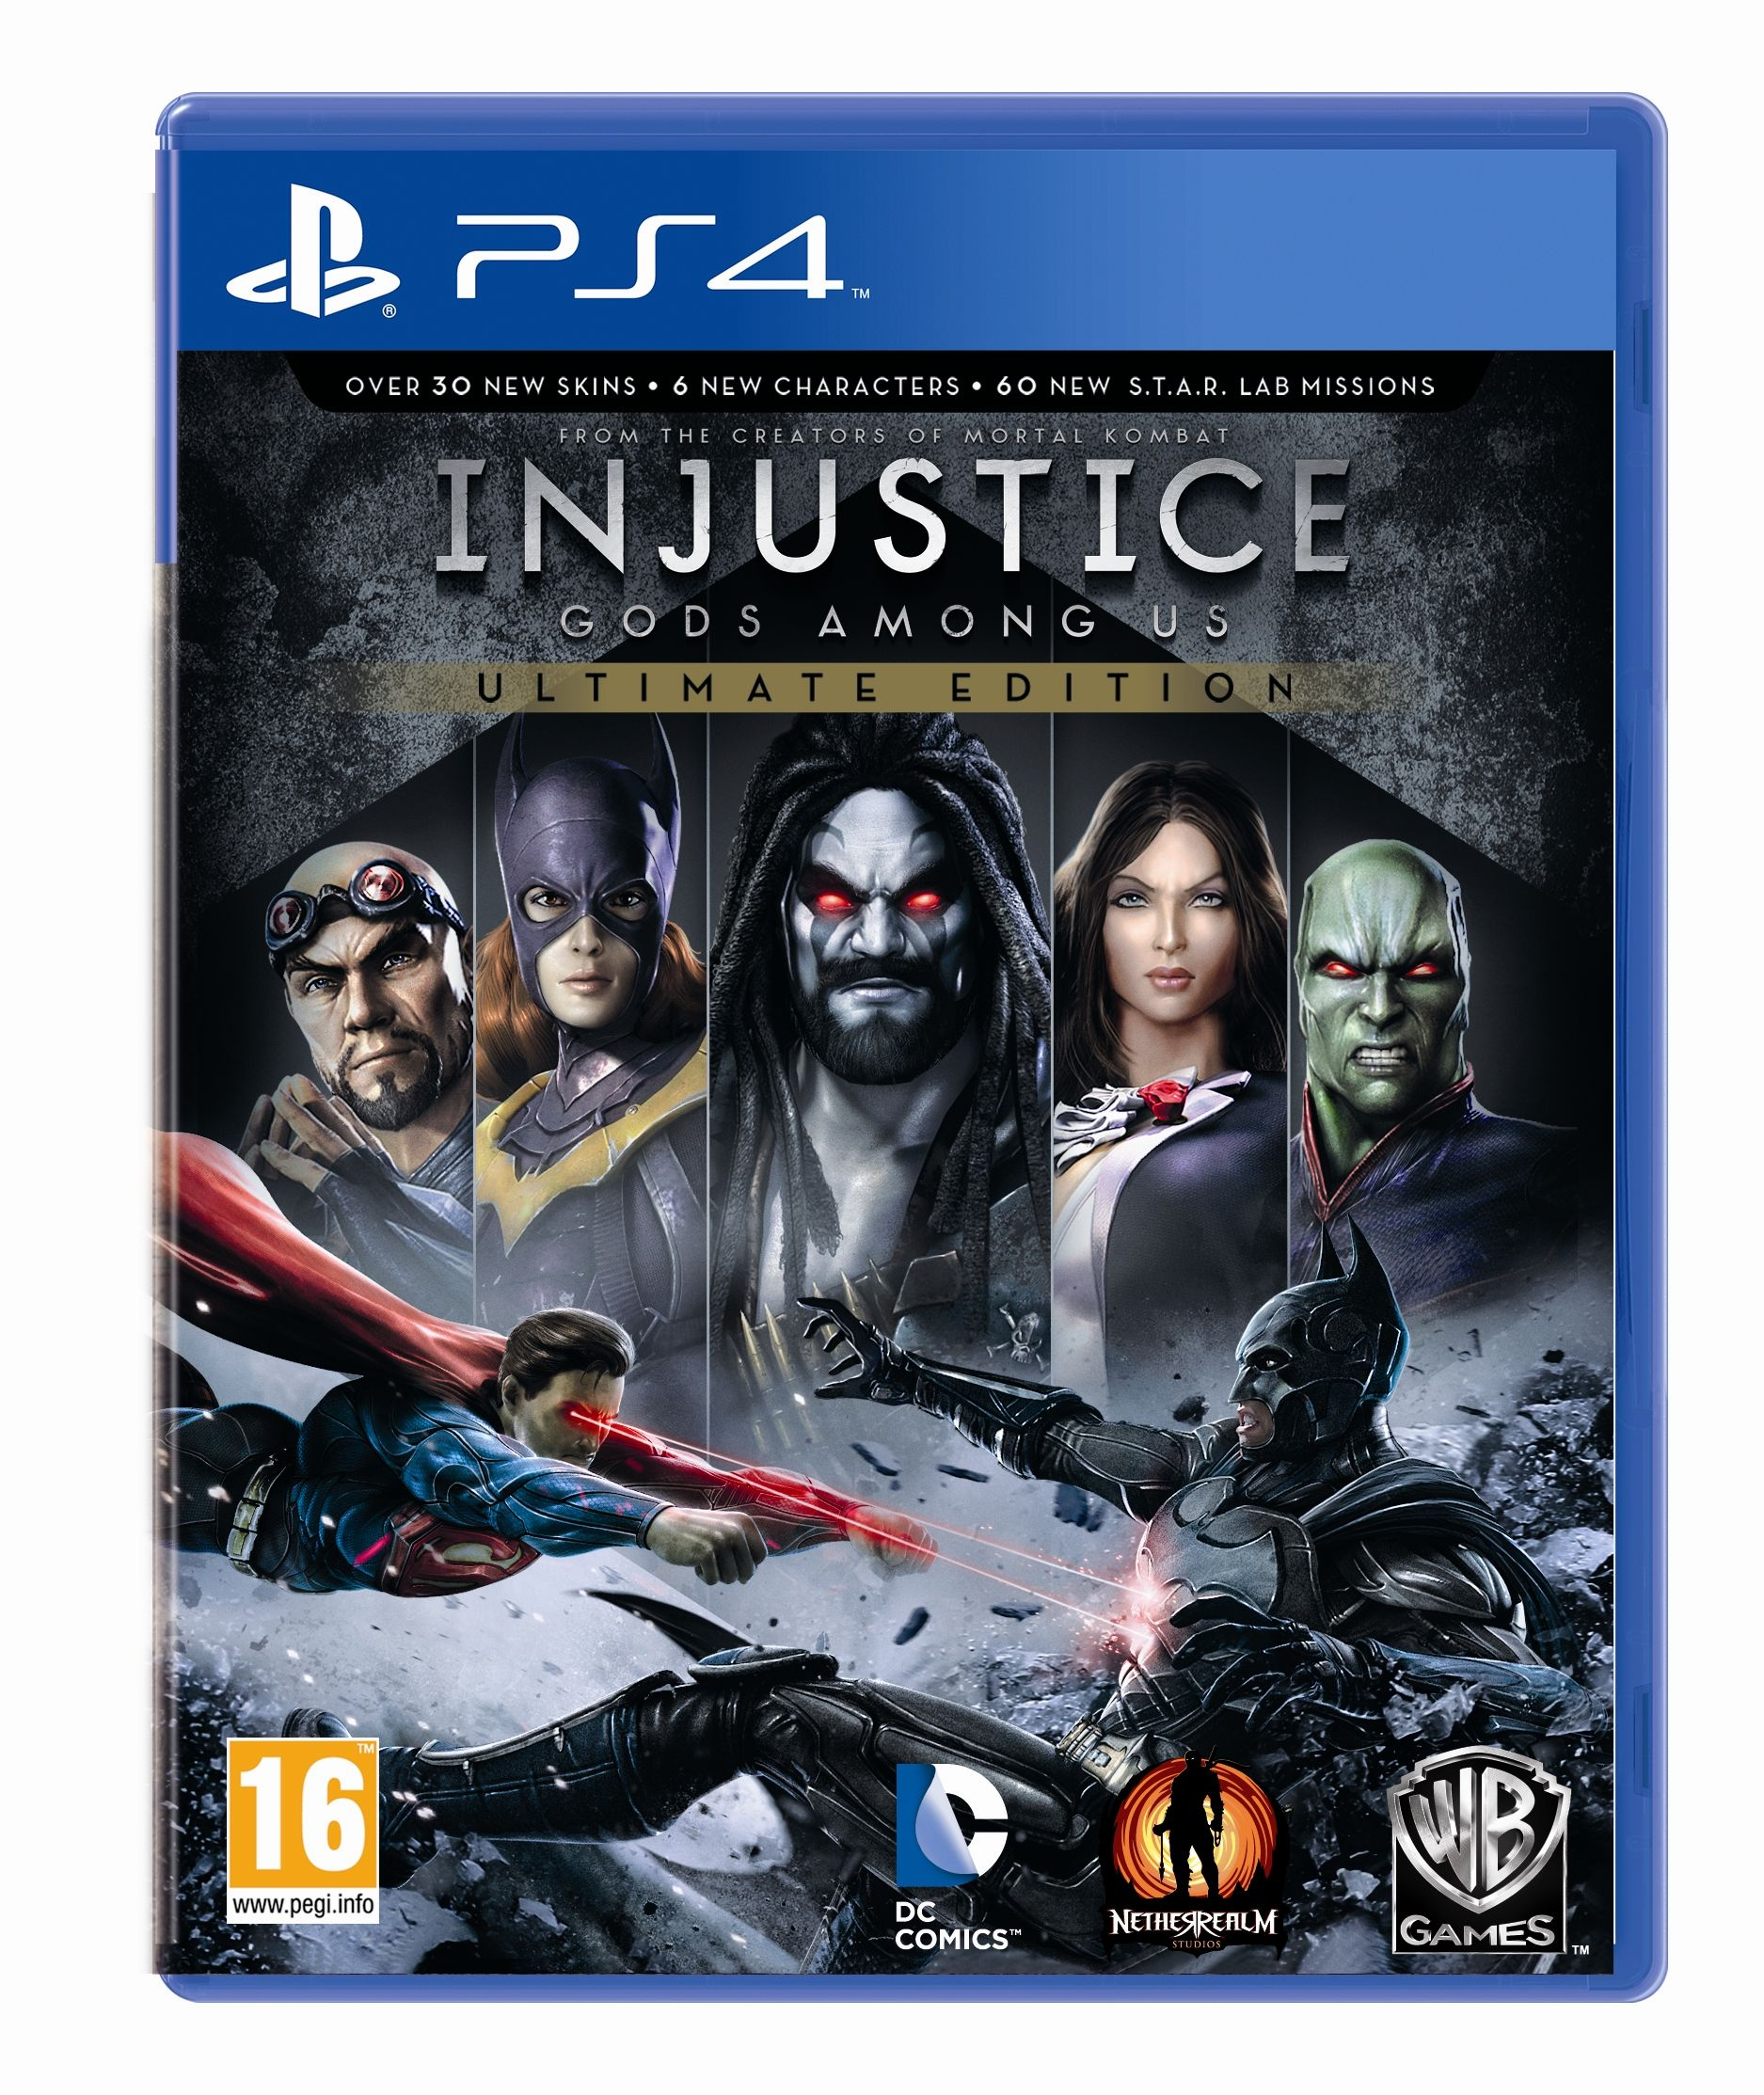 Injustice God Among Us Game Cover Ps4 Girl Pinterest 2 Reg 3 Deluxe Edition